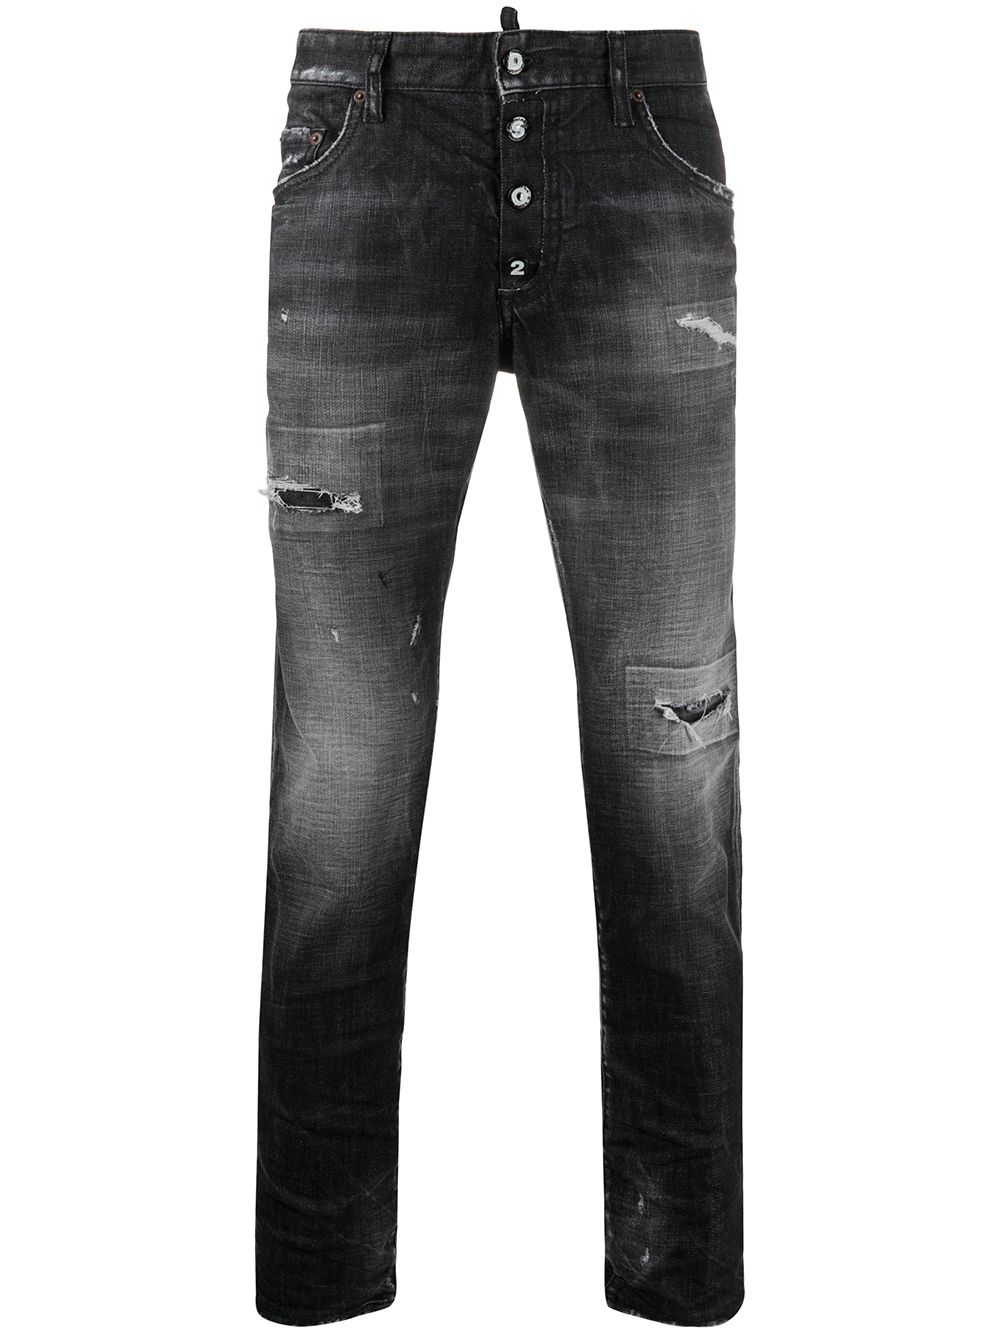 DSQUARED2 Skater Distressed Jeans Black - Maison De Fashion